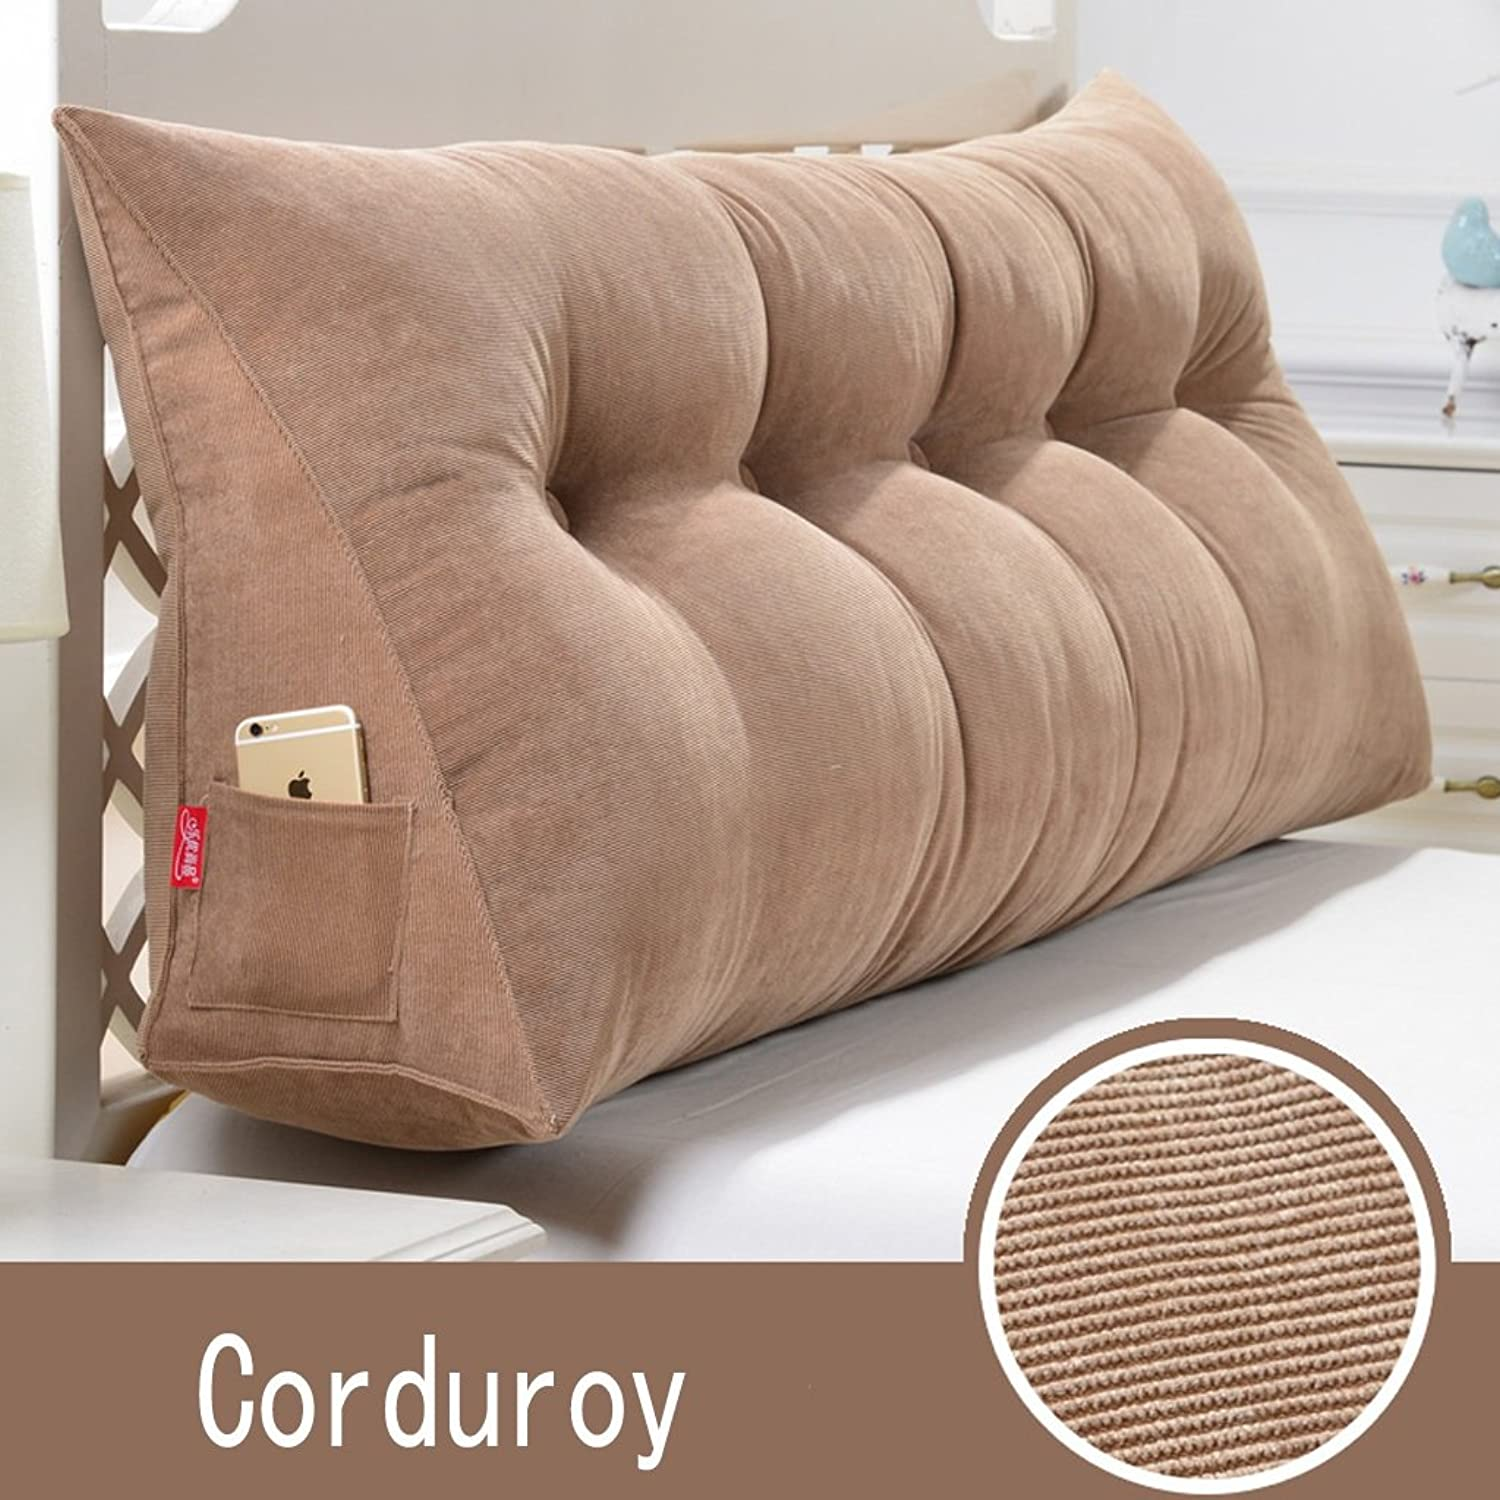 RFJJAL Triangle Headboard Cushion Single Double Pillow Pillow Reading Bed Office Backrest Removable Corduroy Bedding (color  Coffee, Size  135  20  50cm) (color   B, Size   60  20  50cm)